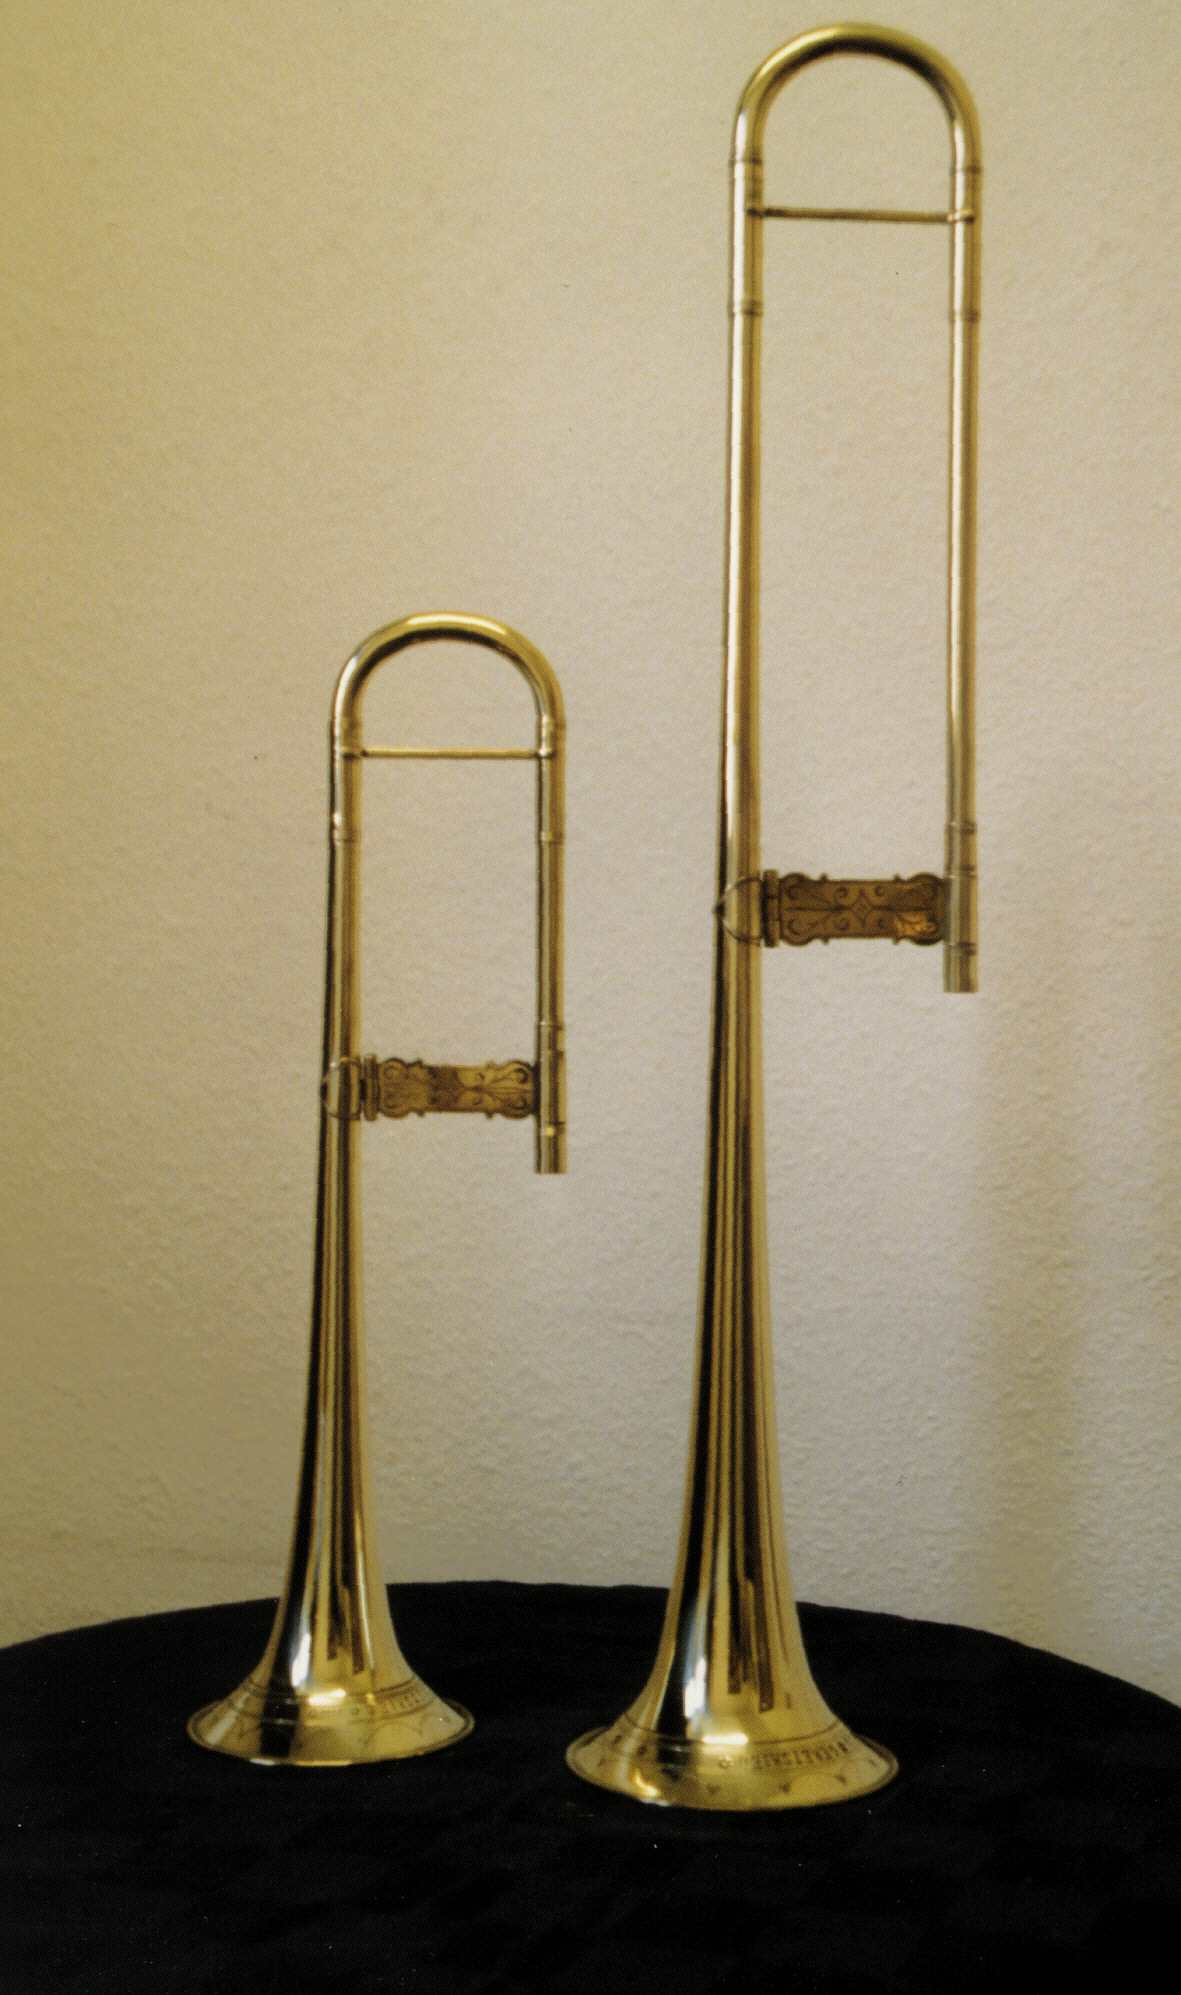 clasclassical alto sackbut corpus and classical tenor sackbut corpus